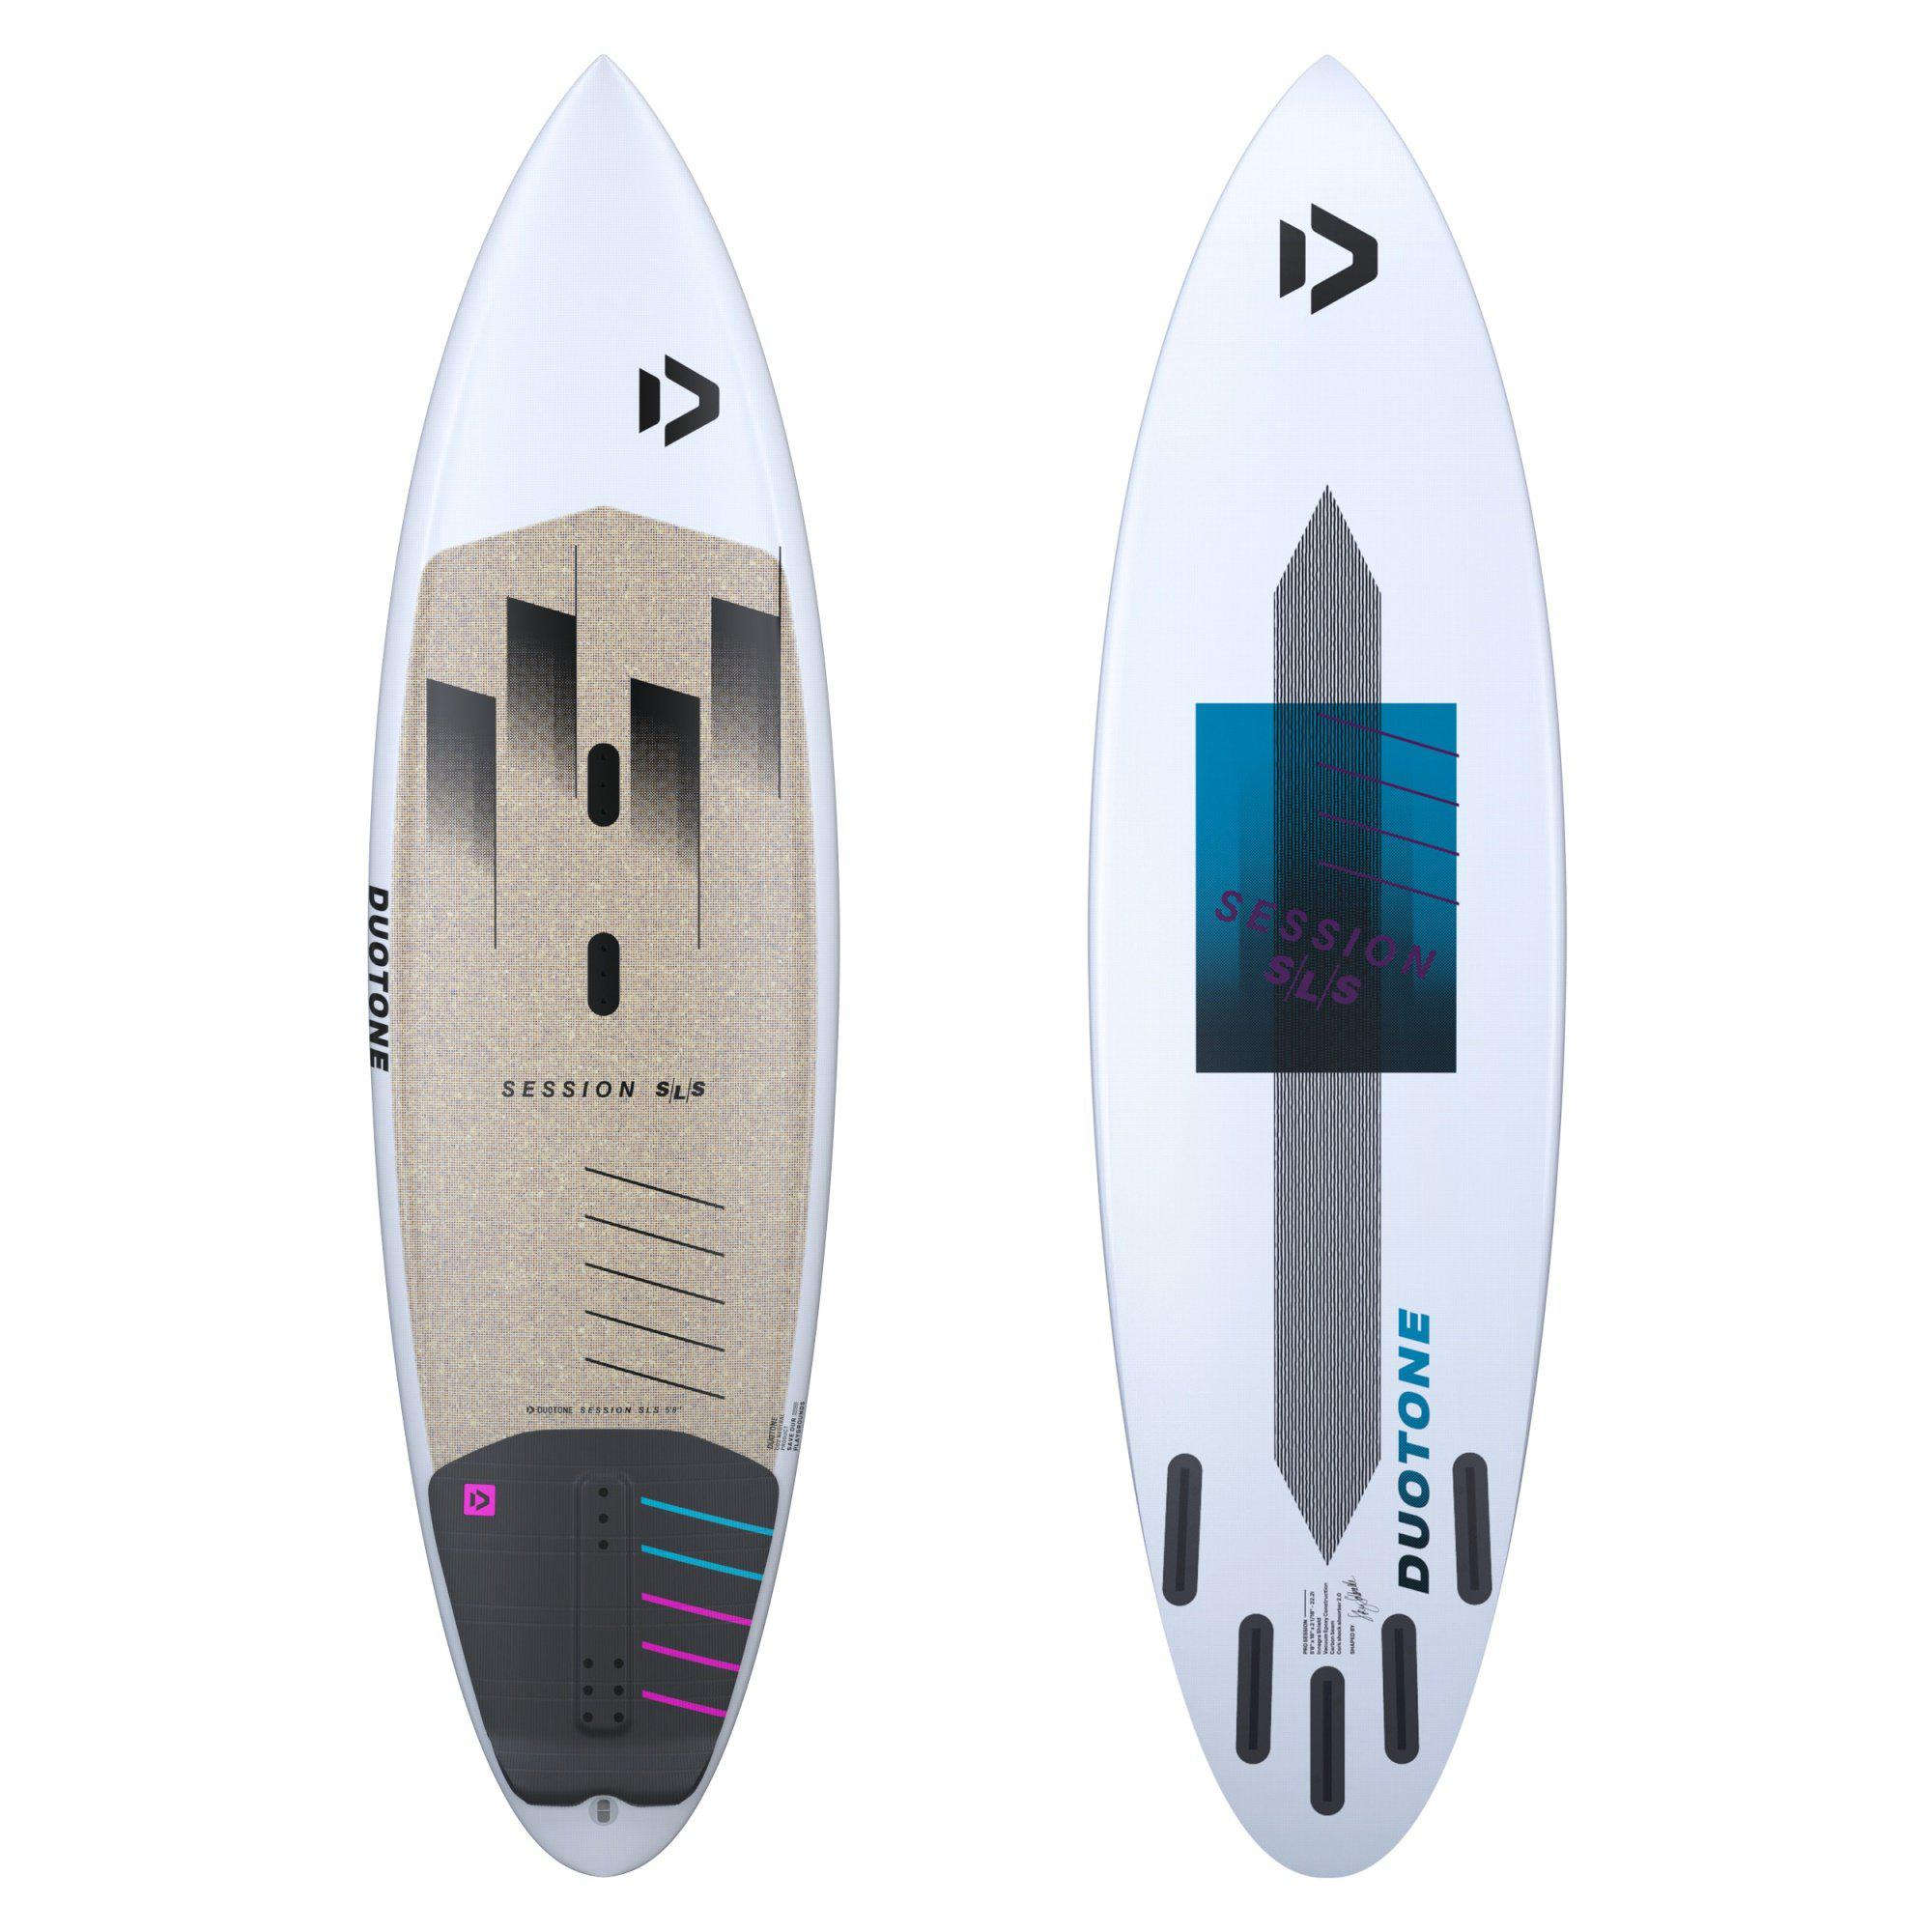 2021 Duotone Session SLS Kite Surfboard-Big Winds